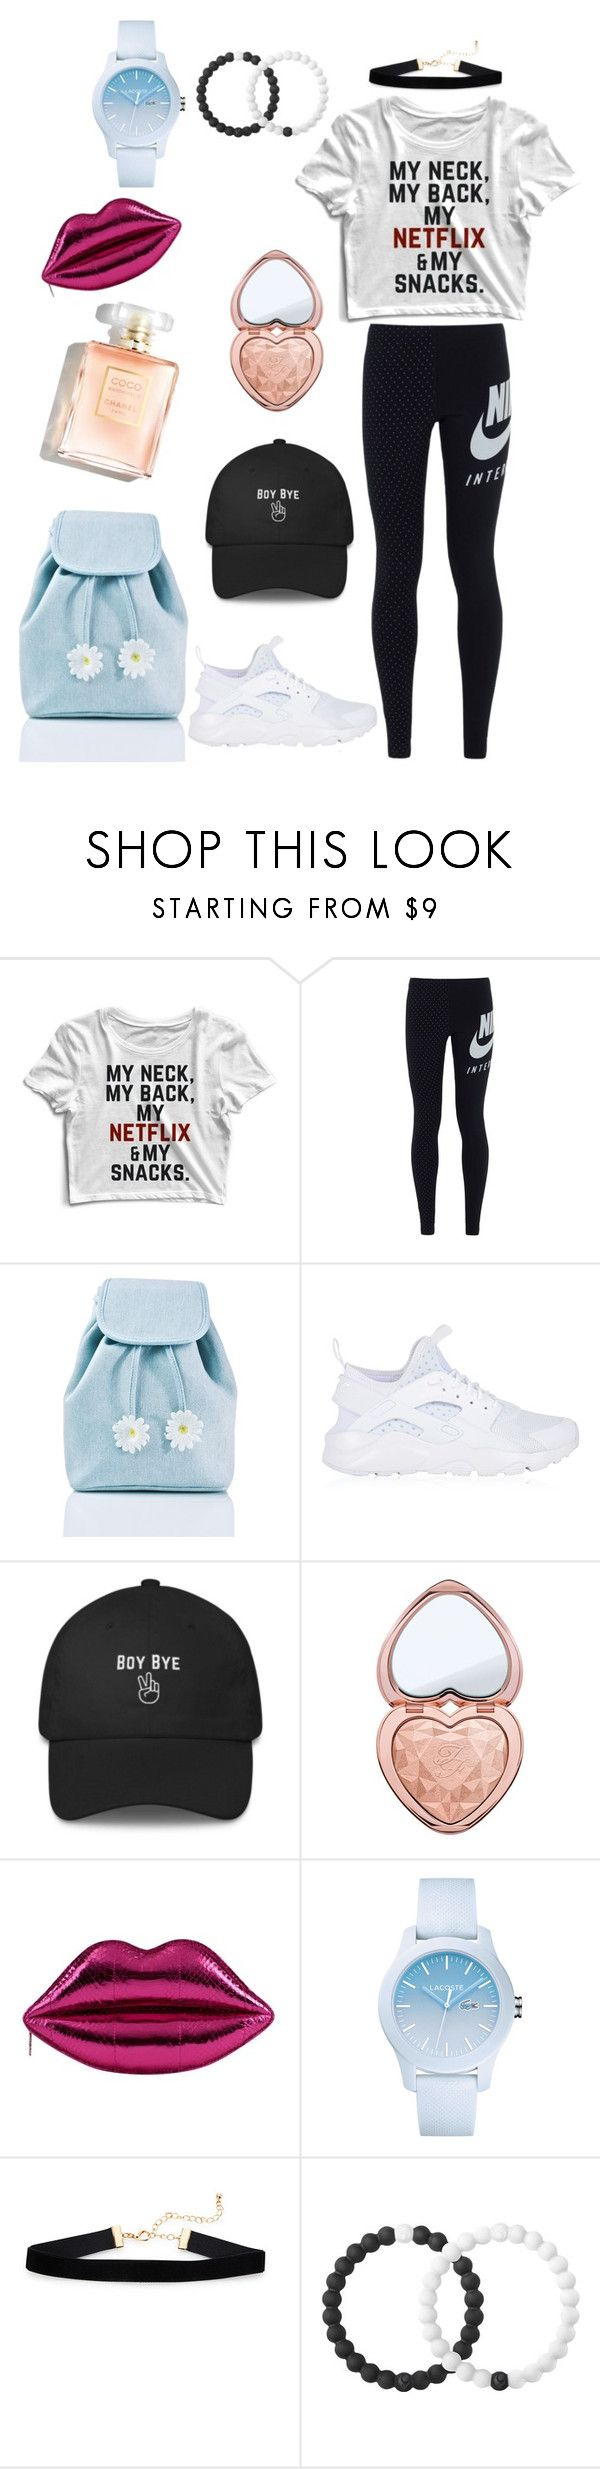 """Game Day Outfit"" by stelastaneva ❤ liked on Polyvore featuring NIKE, Sugarbaby, Too Faced Cosmetics, Lacoste and Lokai"